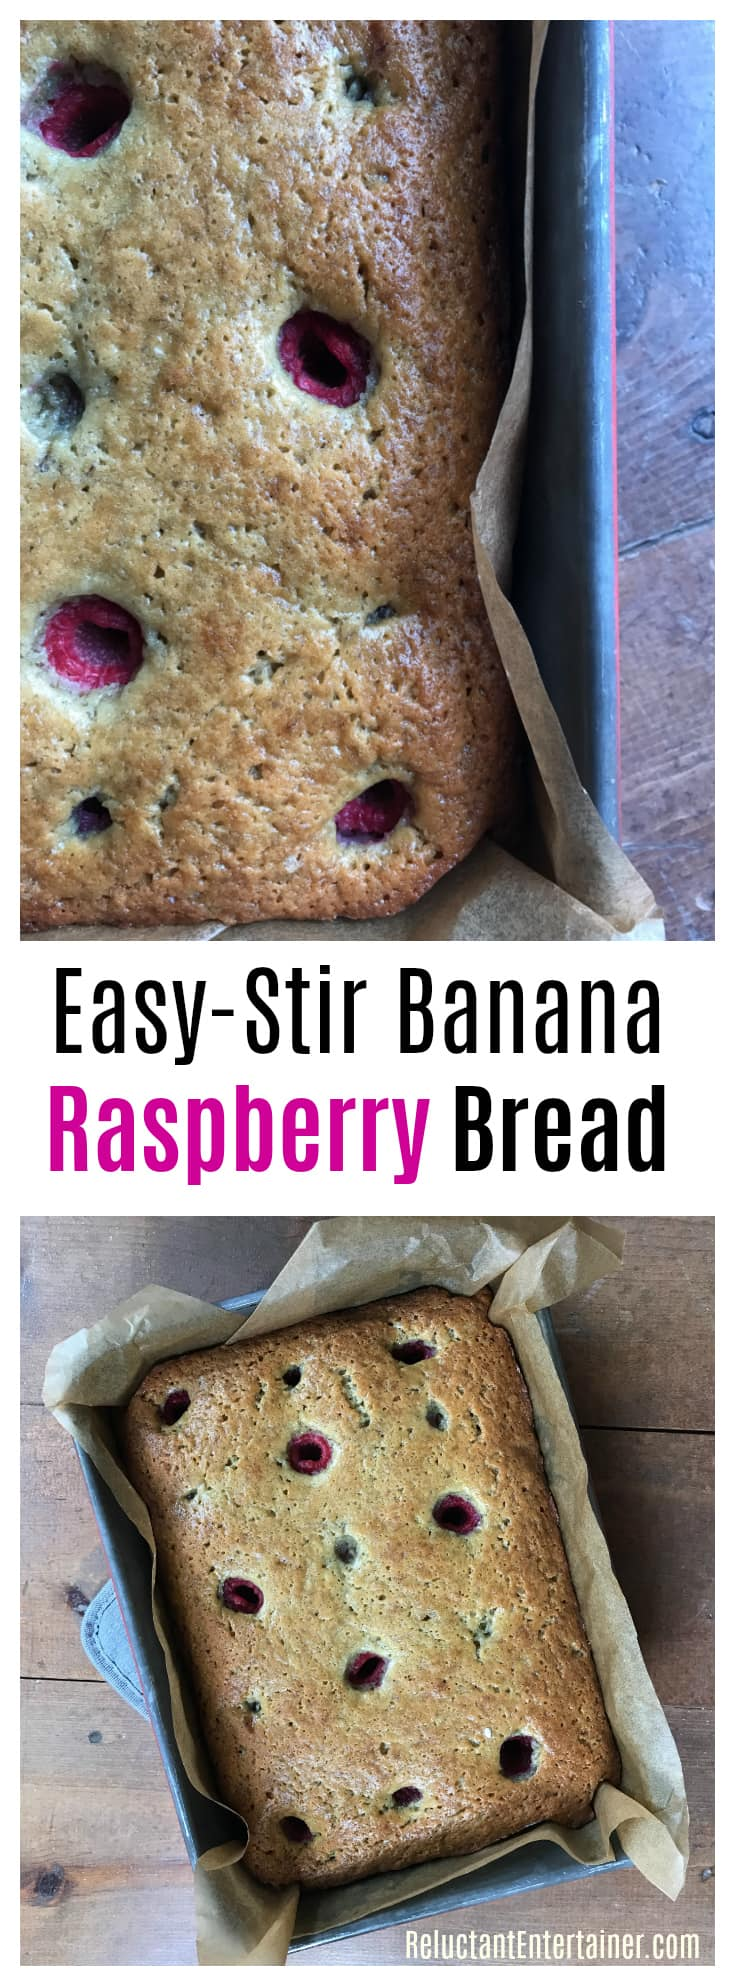 Easy-Stir Banana Raspberry Bread Recipe